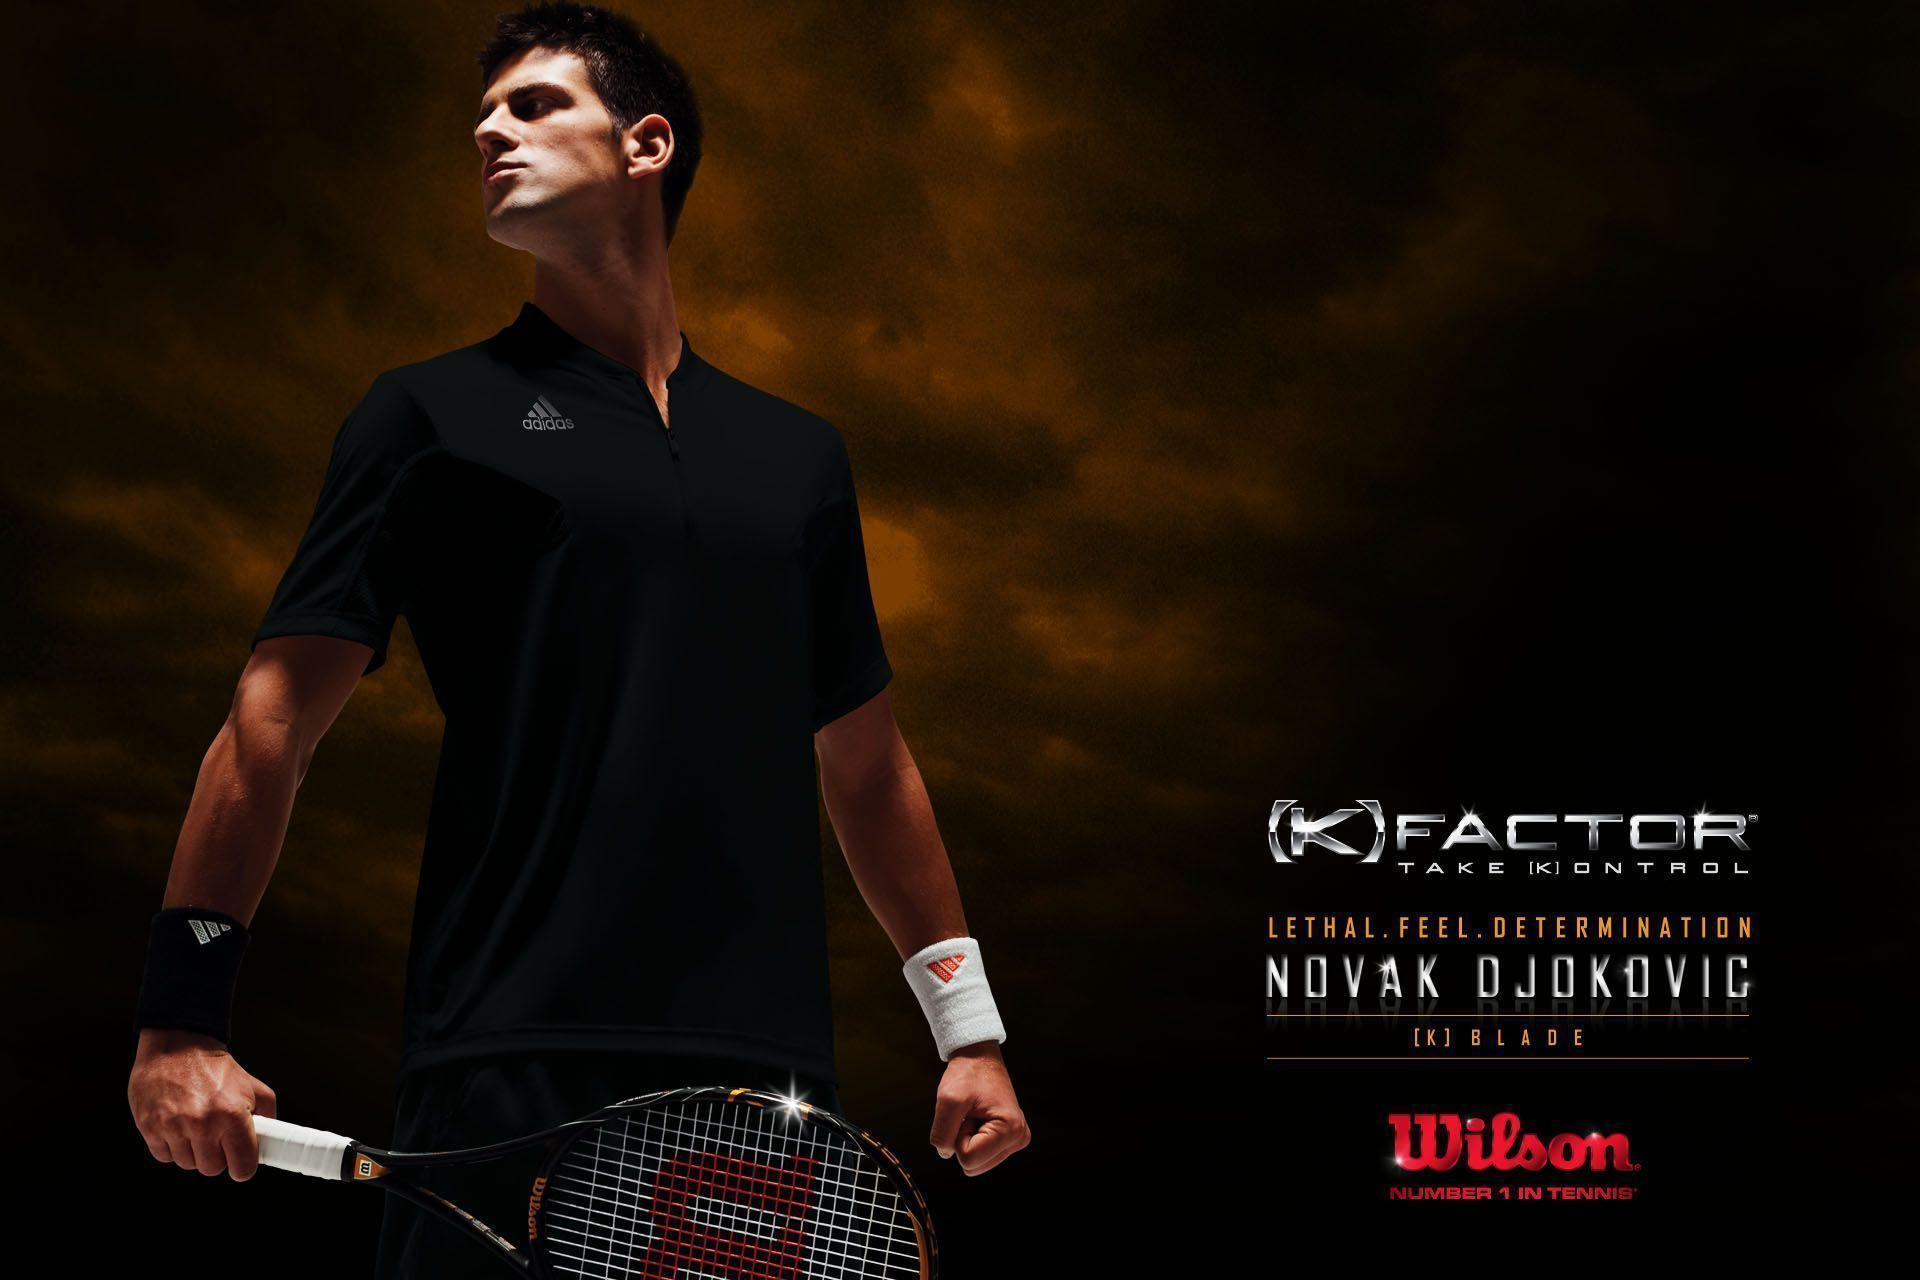 Tennis – Novak Djokovic wallpaper | Sport Wallpapers